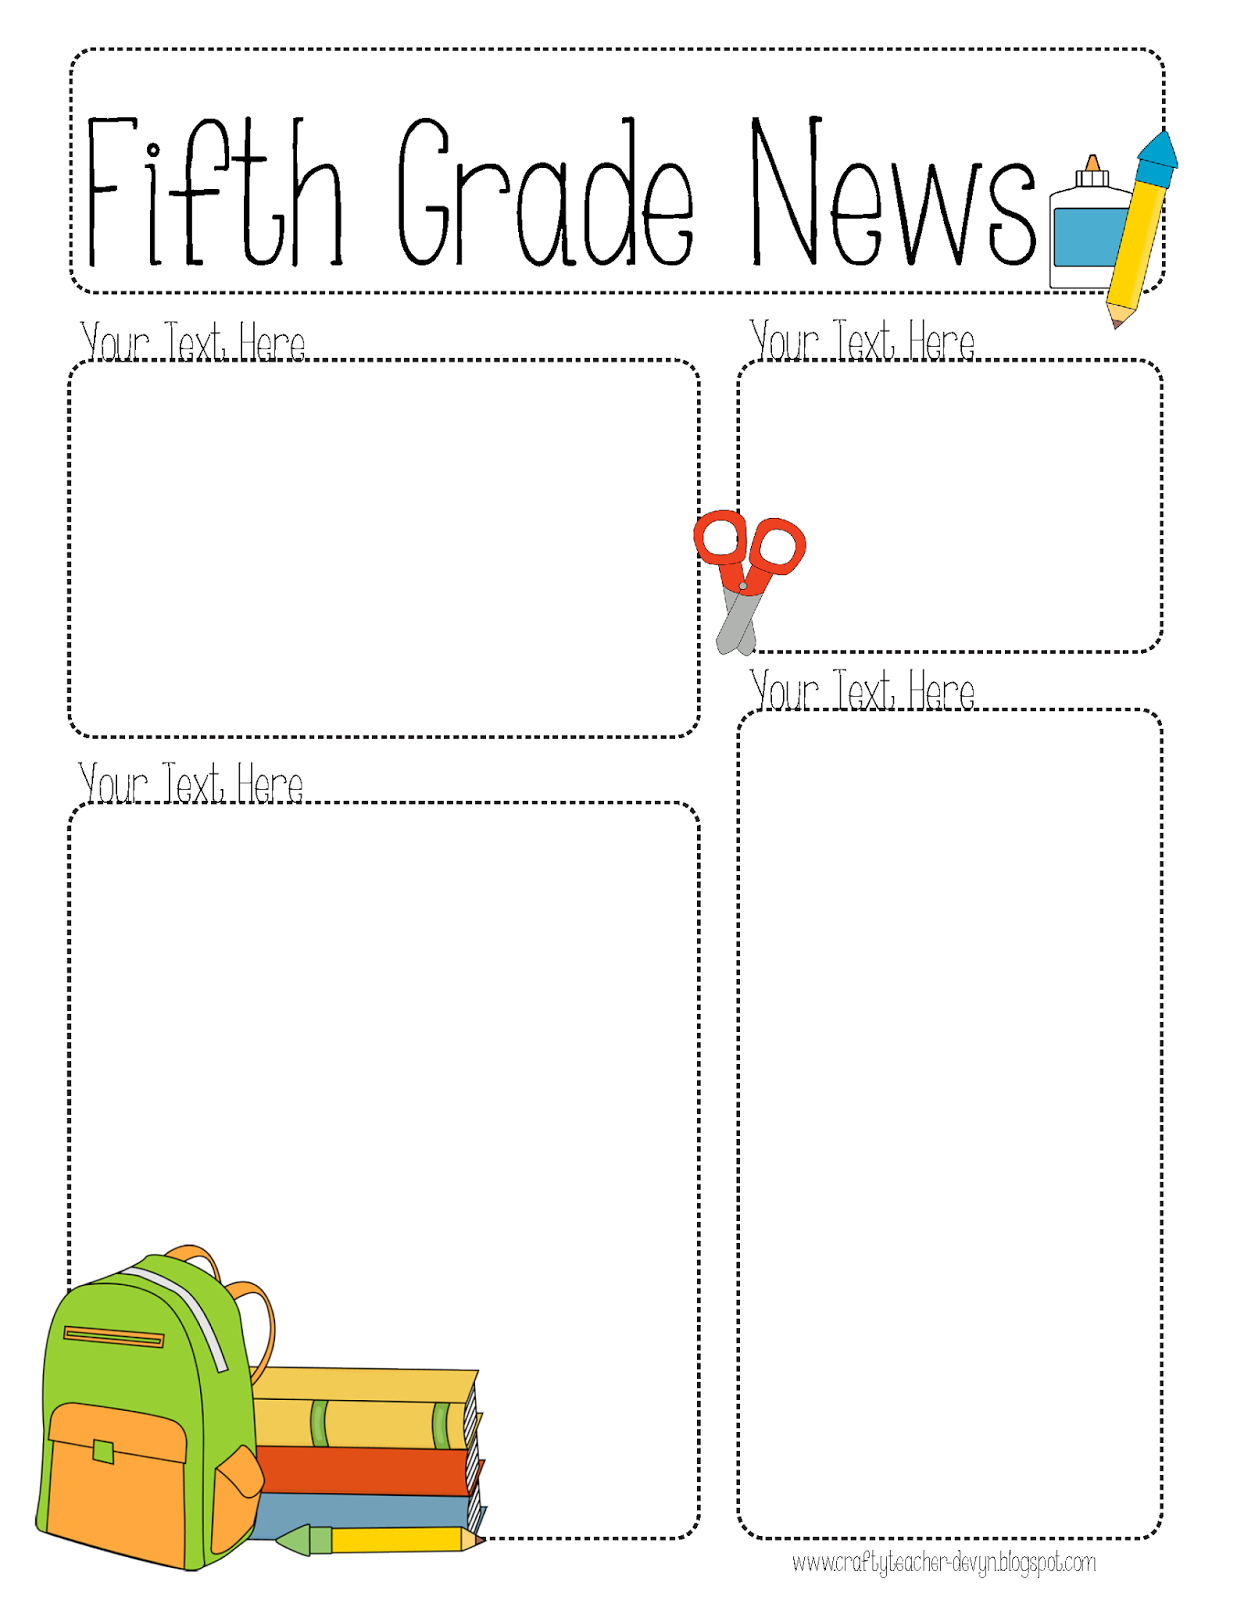 completely editable newsletter template for all grades